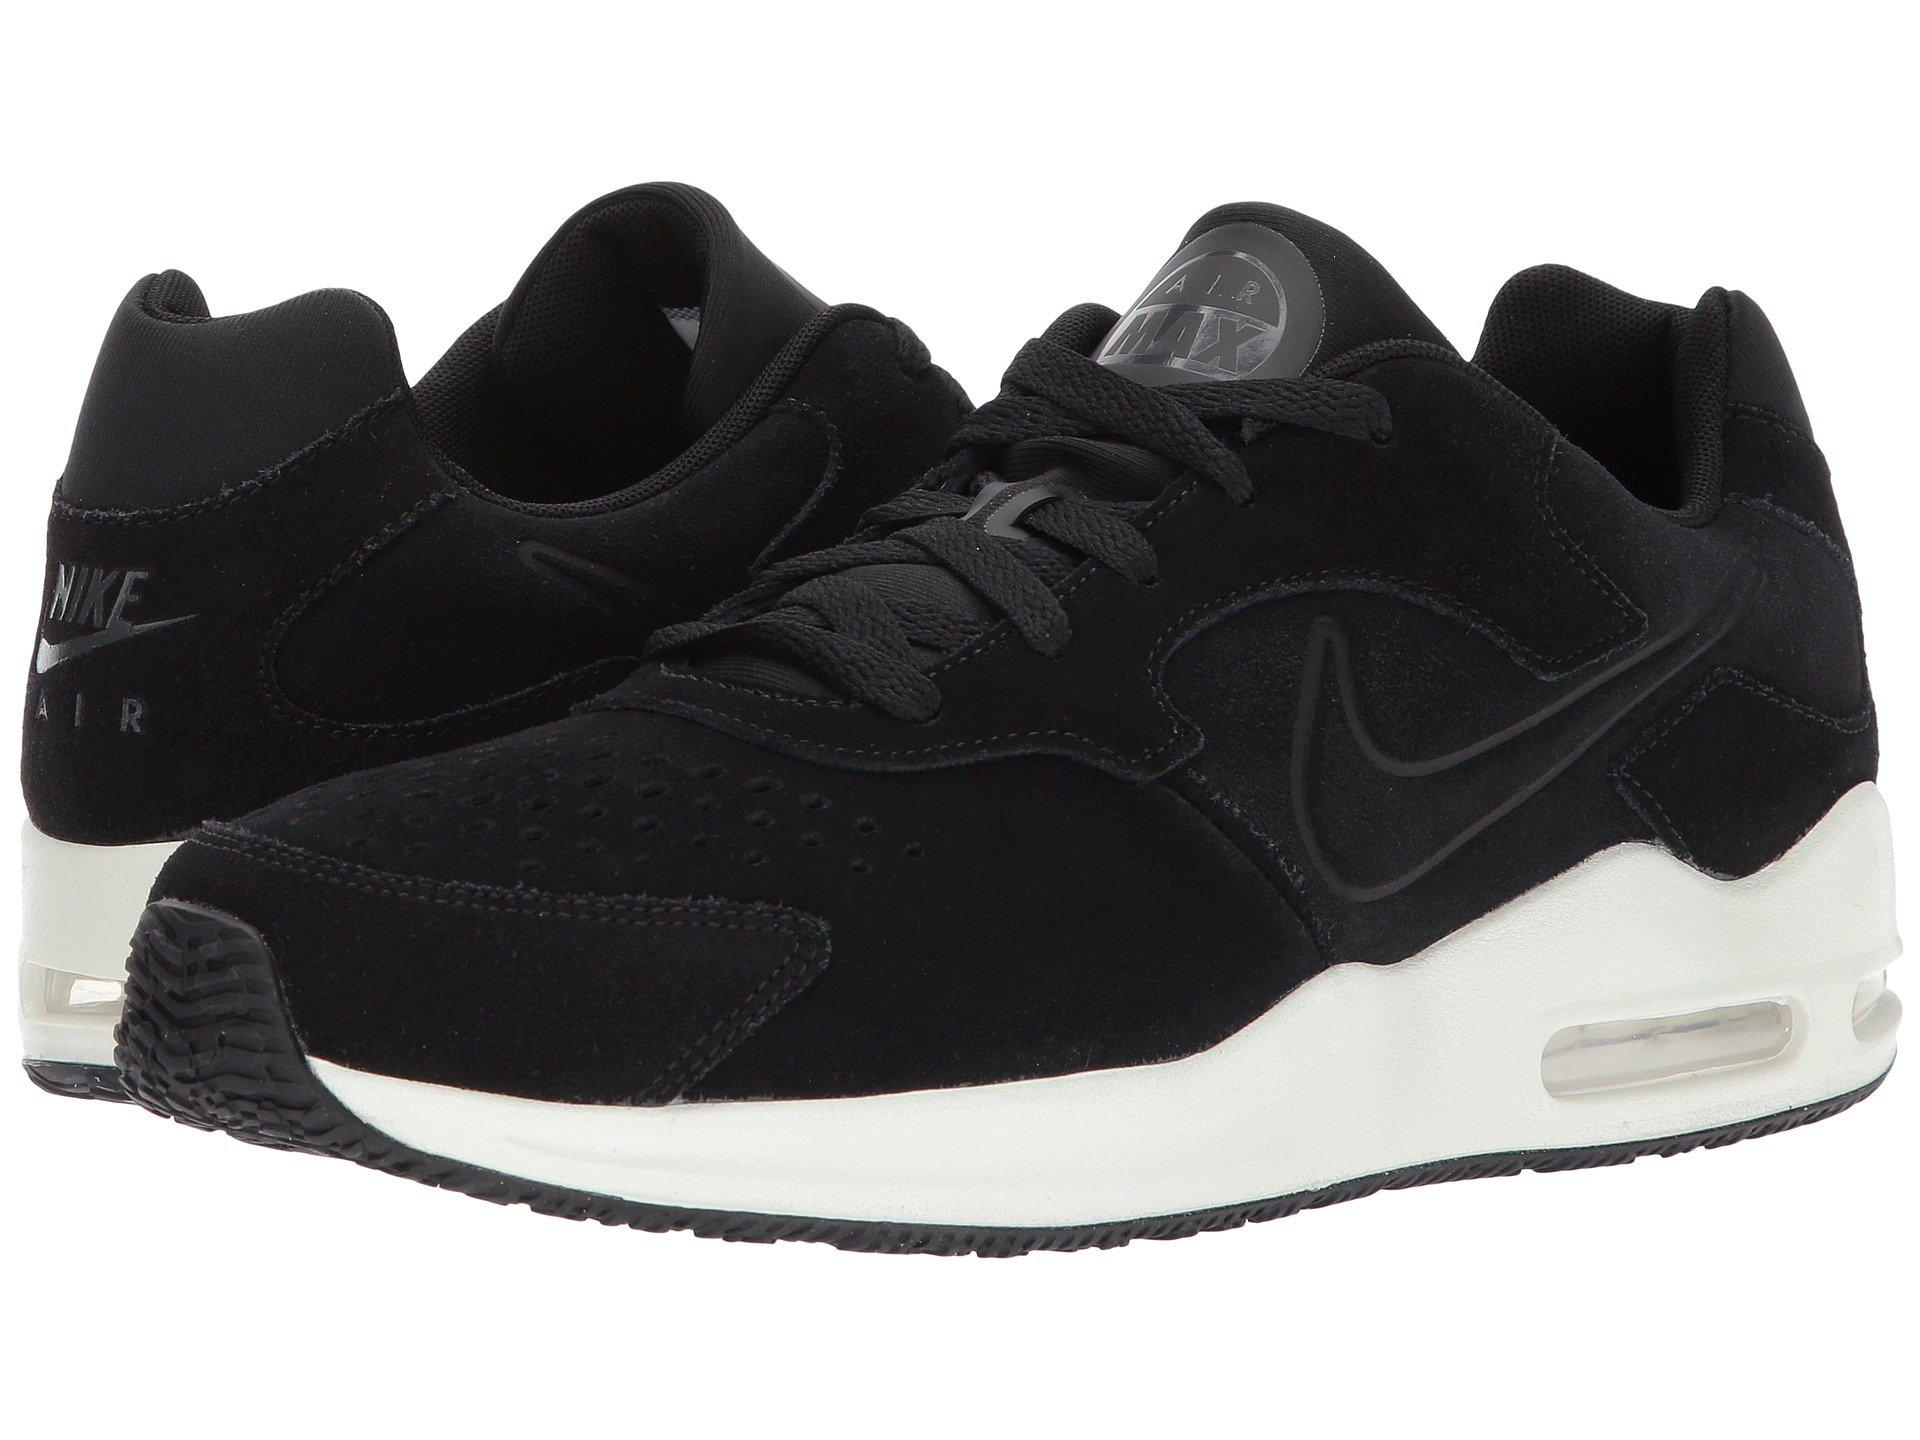 new product c679c 5a734 Nike Air Max Guile, Black Black Sail Anthracite